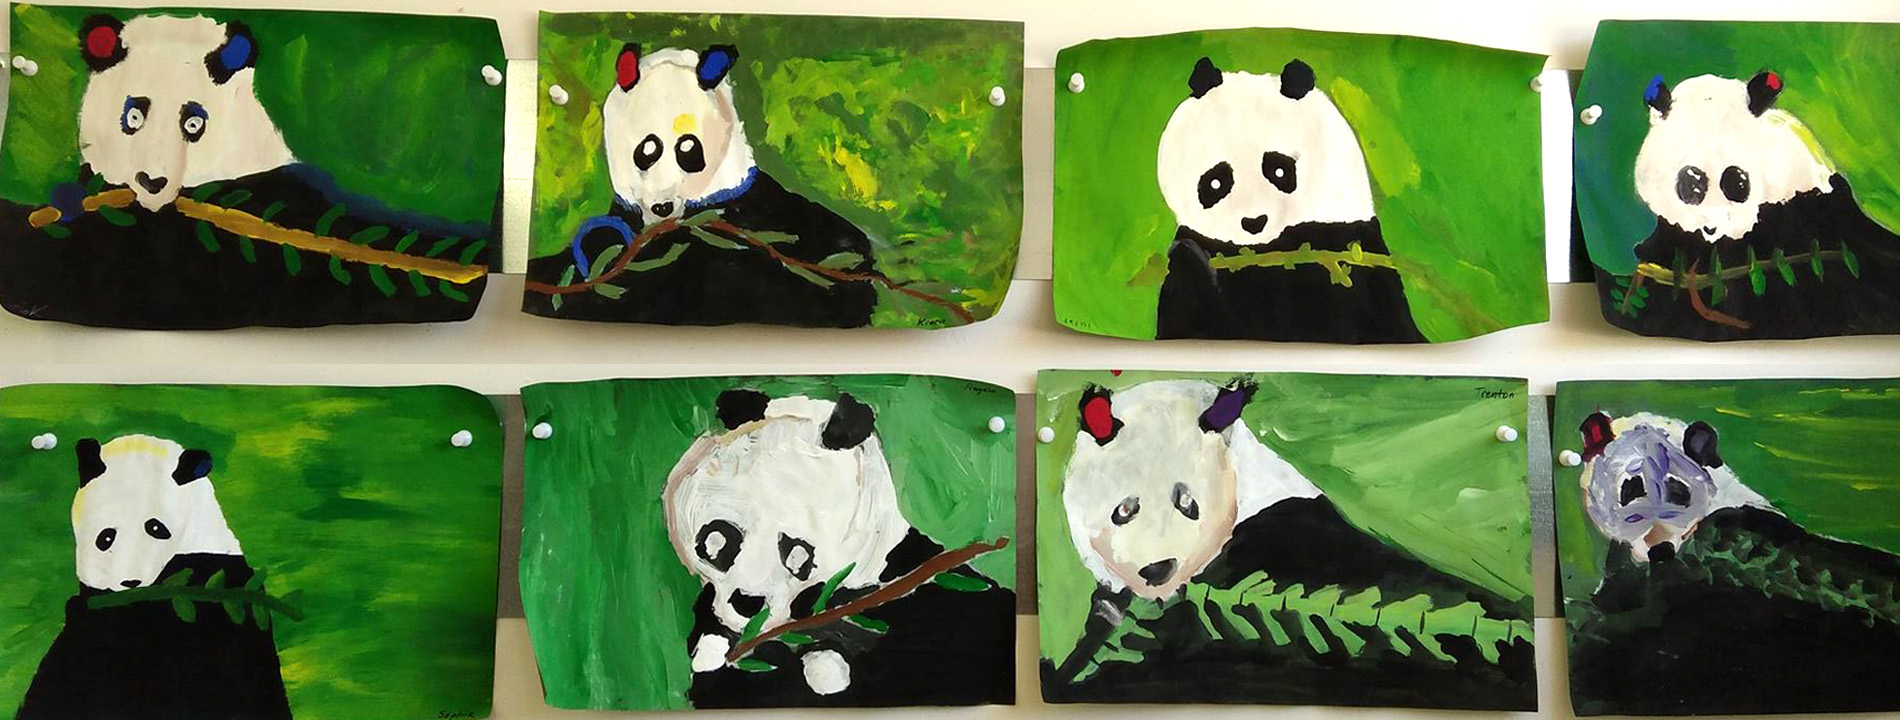 Wildlife & Other Projects (Grades K-2/3)